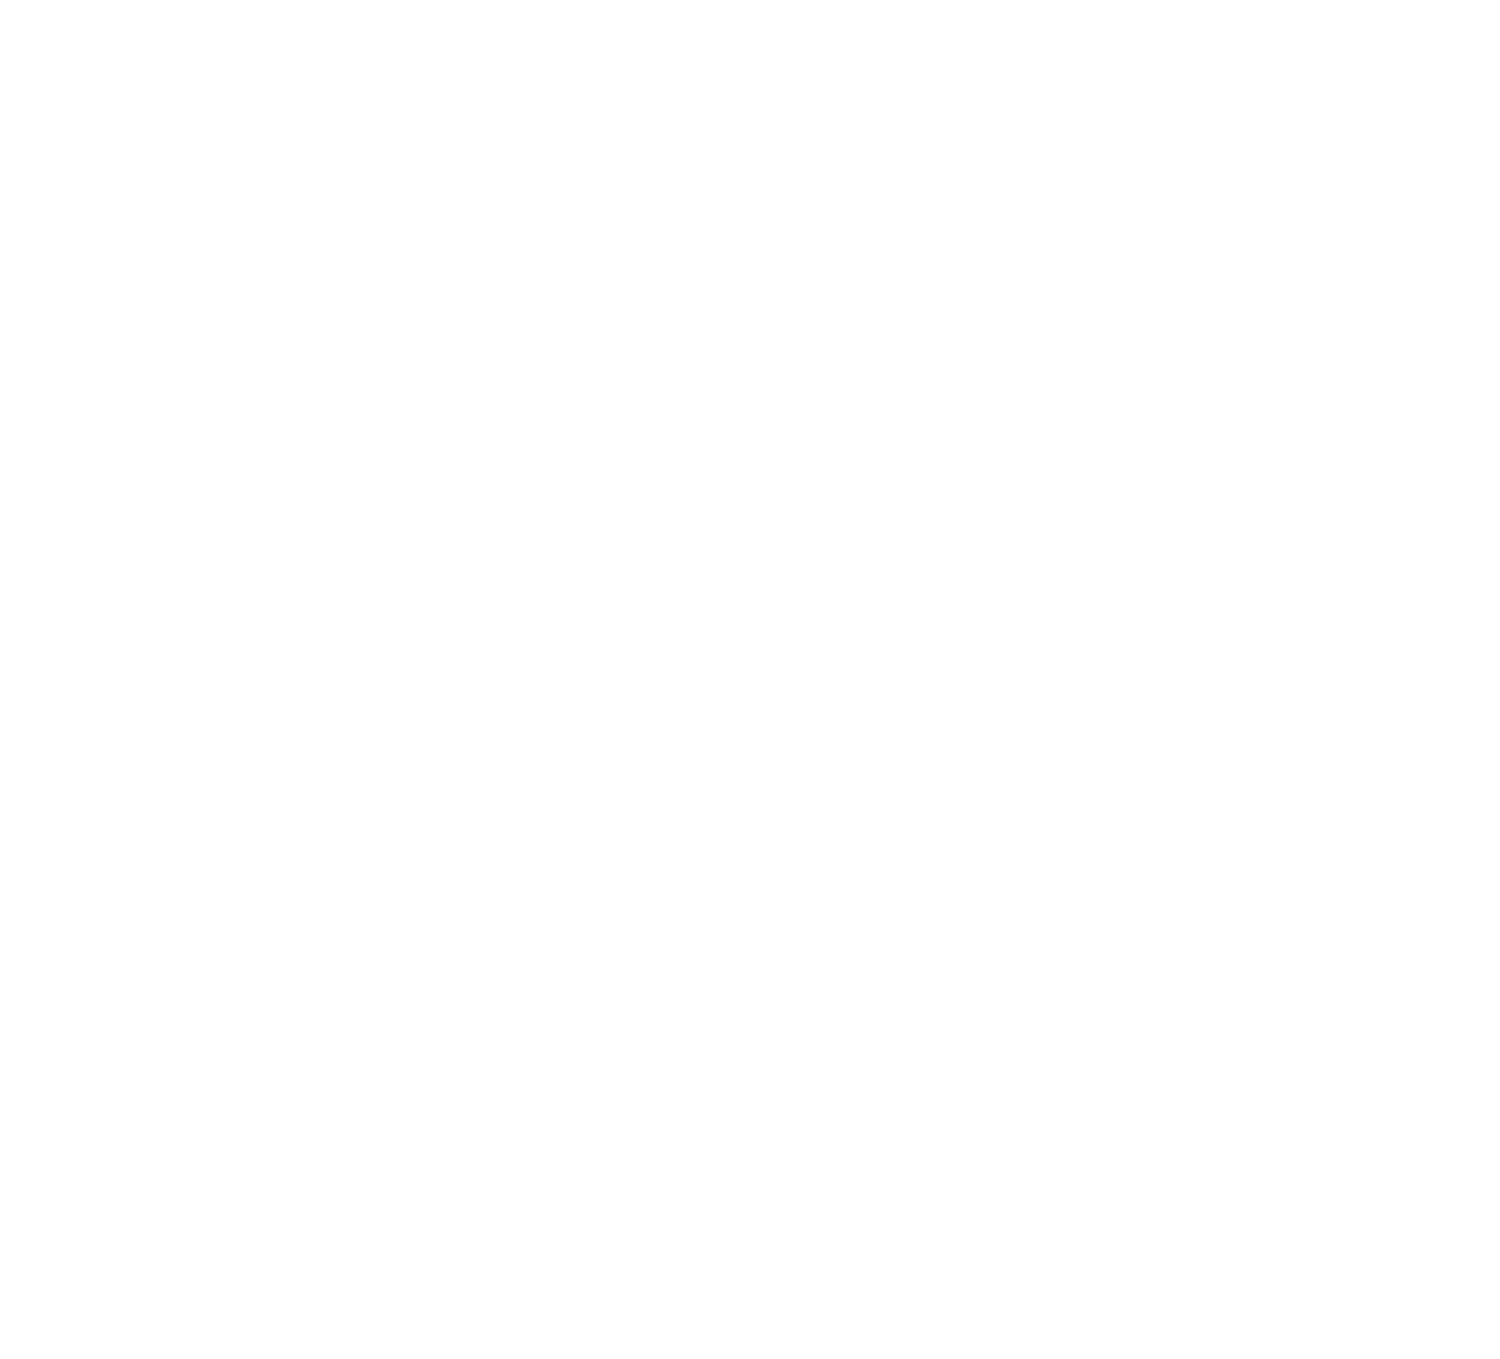 White Light Exposure